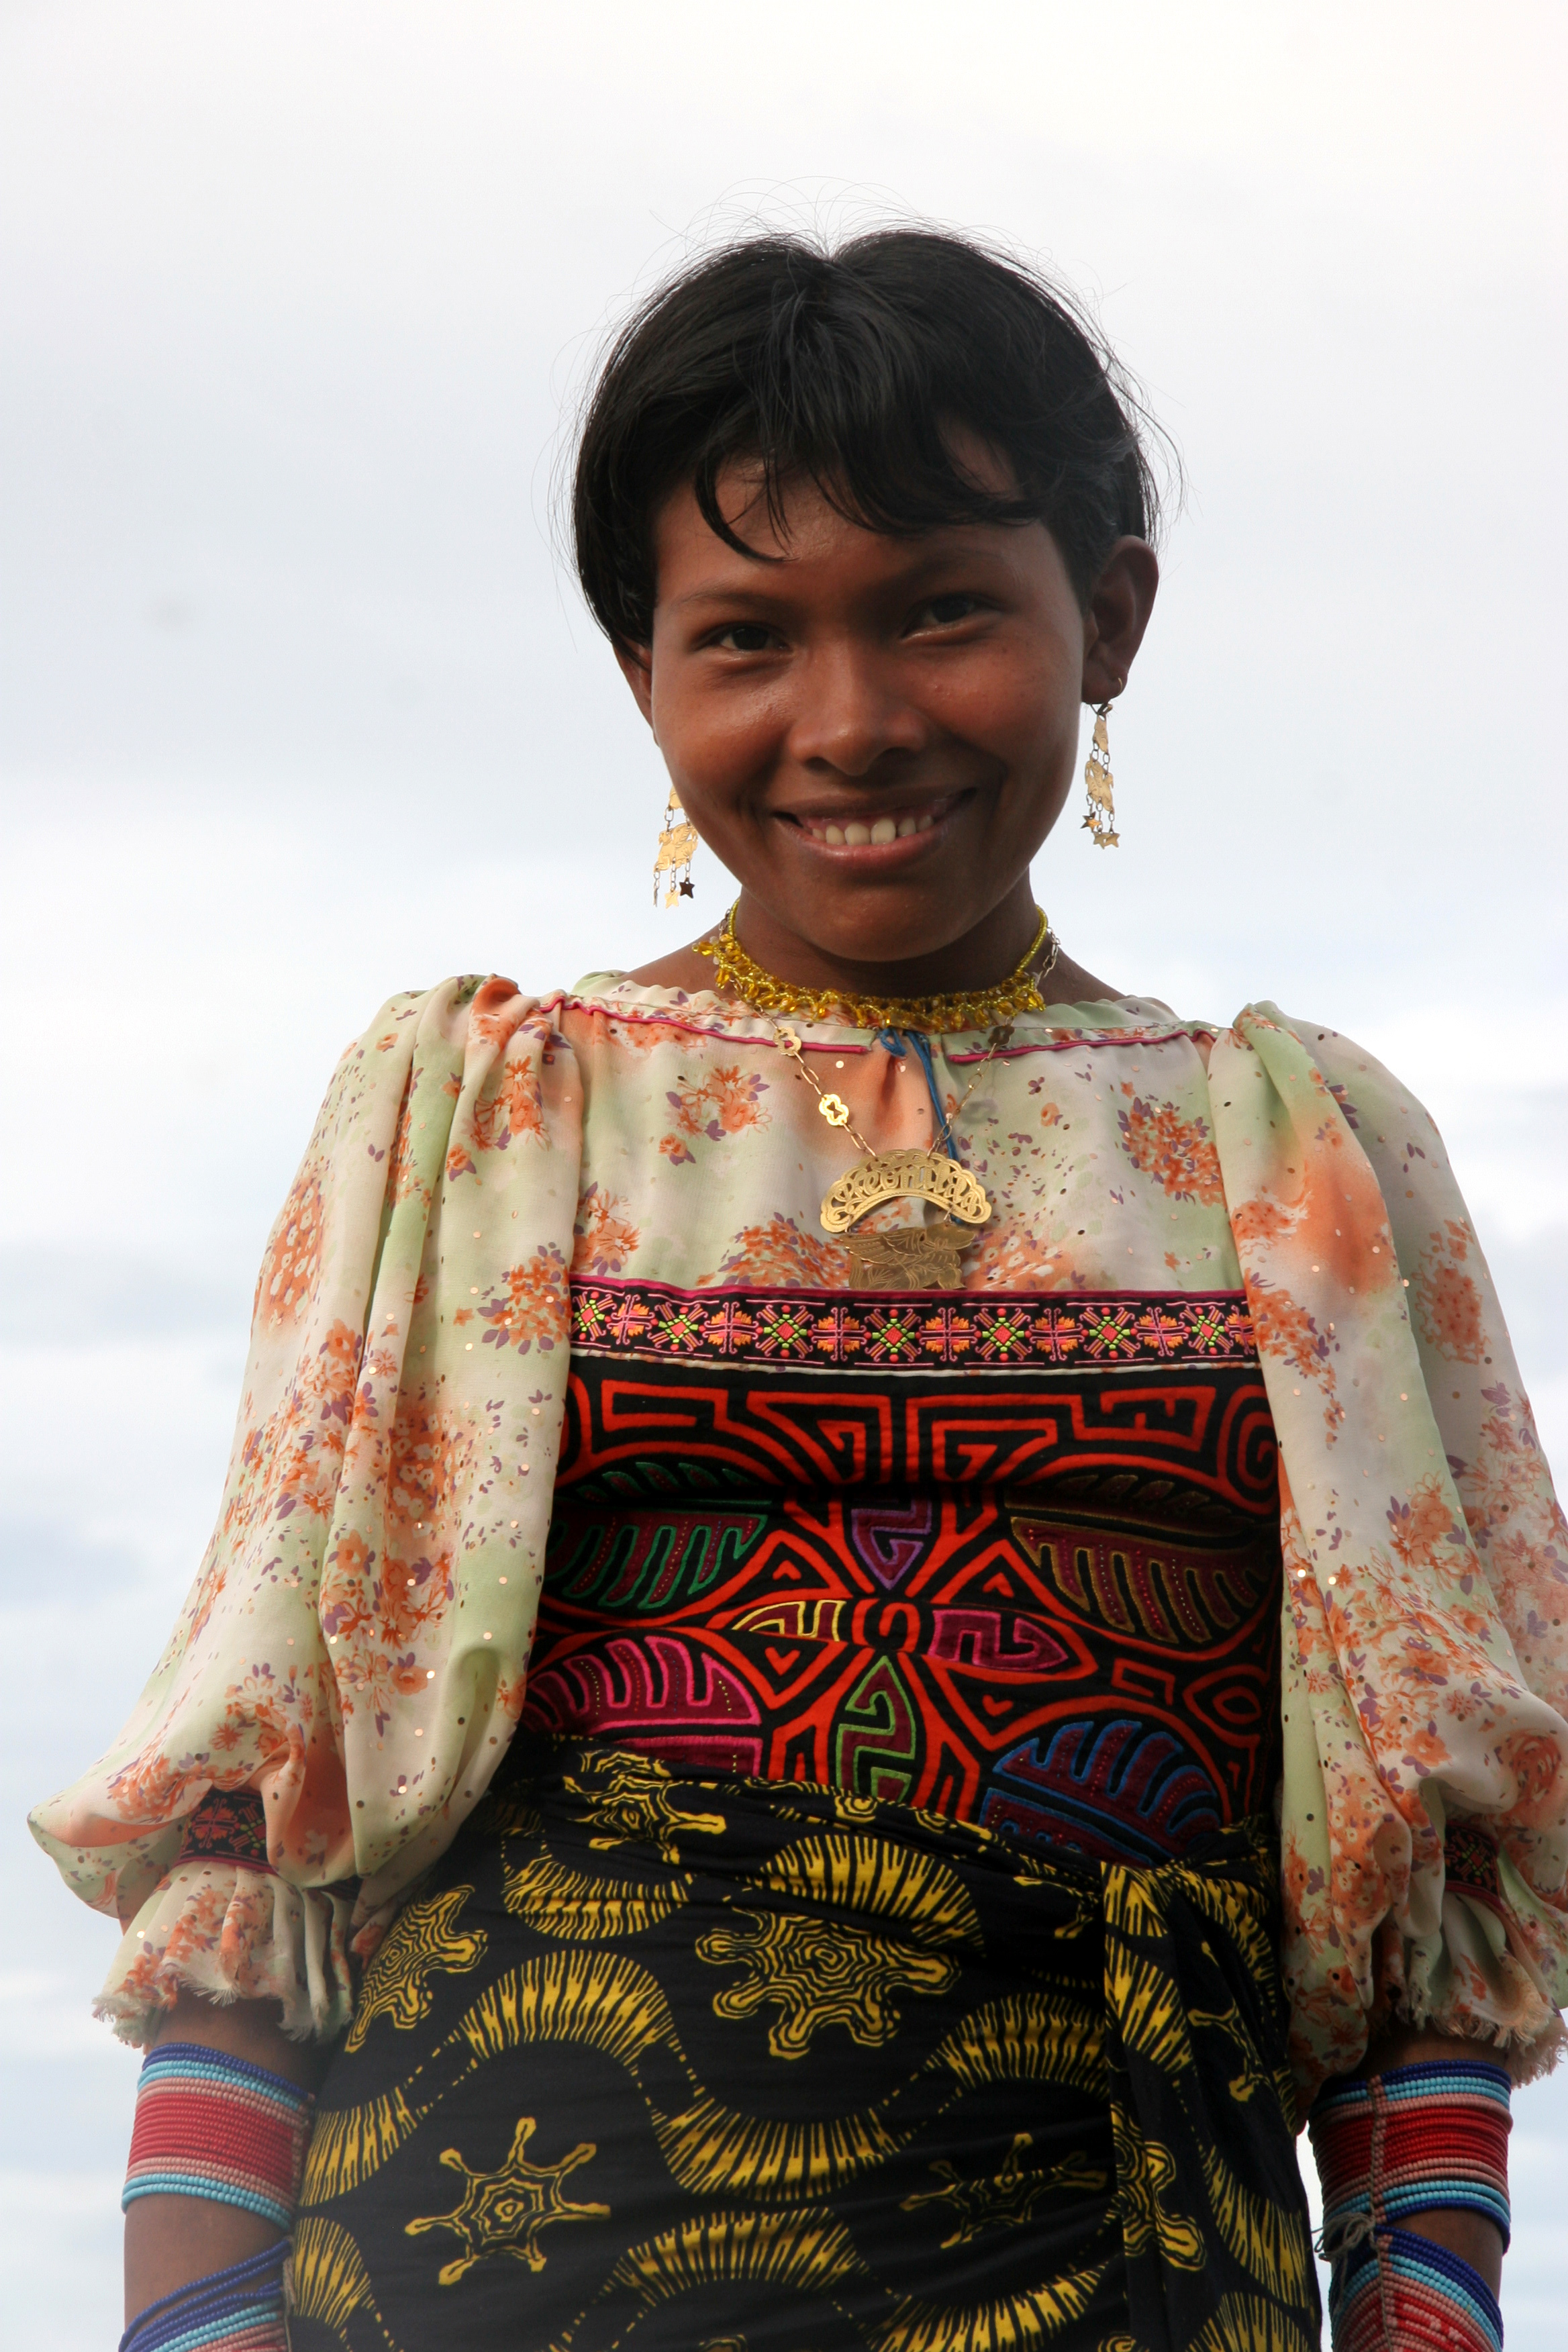 Figure 1: A young Cuna woman from the San Blas Islands, Panama. Photo credit: Yves Picq  http://veton.picq.fr  GFDL ( http://www.gnu.org/copyleft/fdl.html )